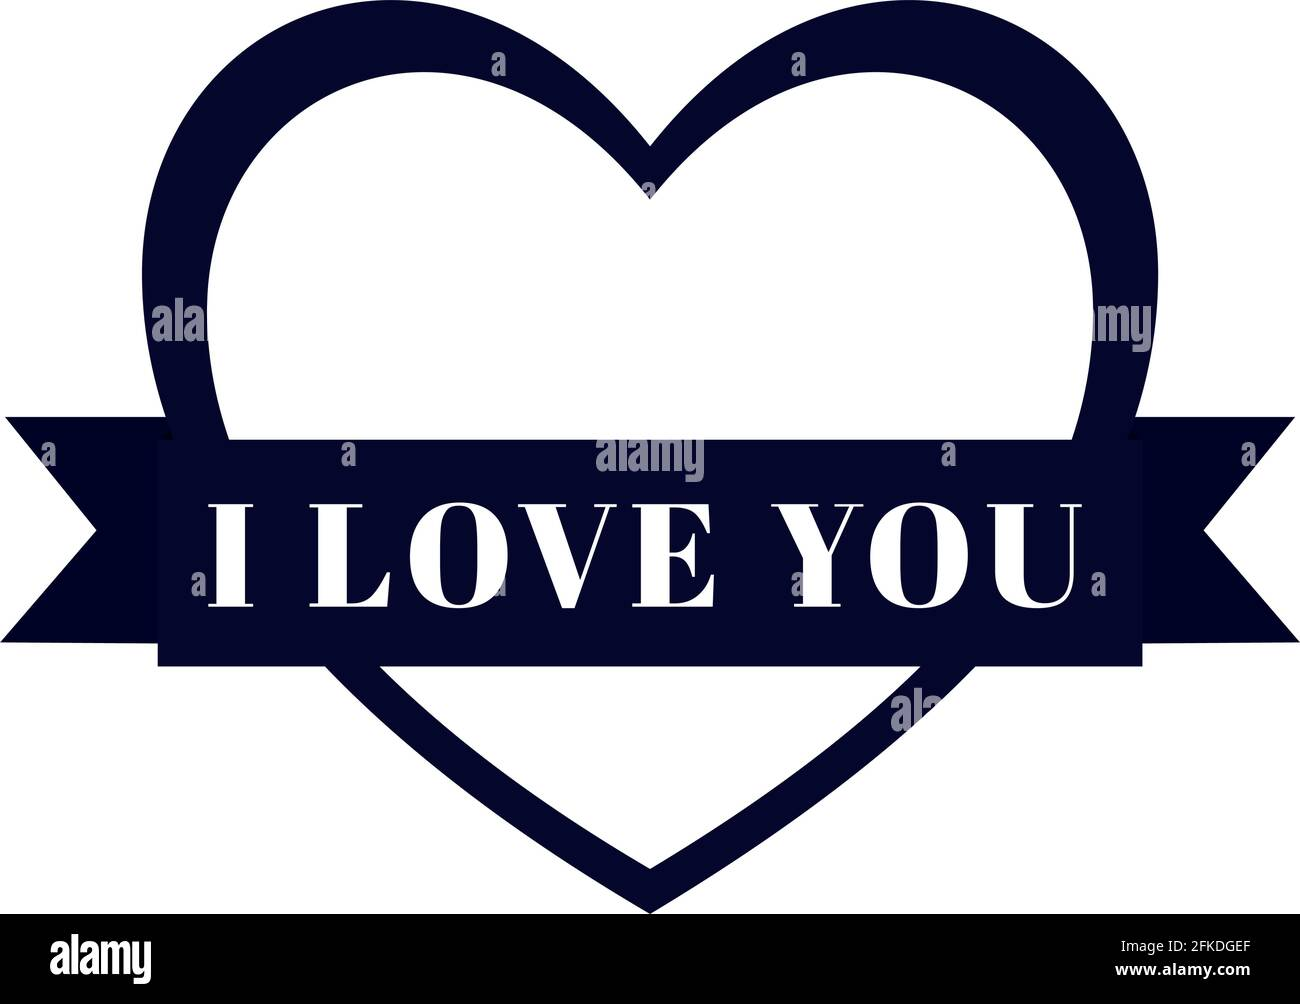 i love you Stock Vector